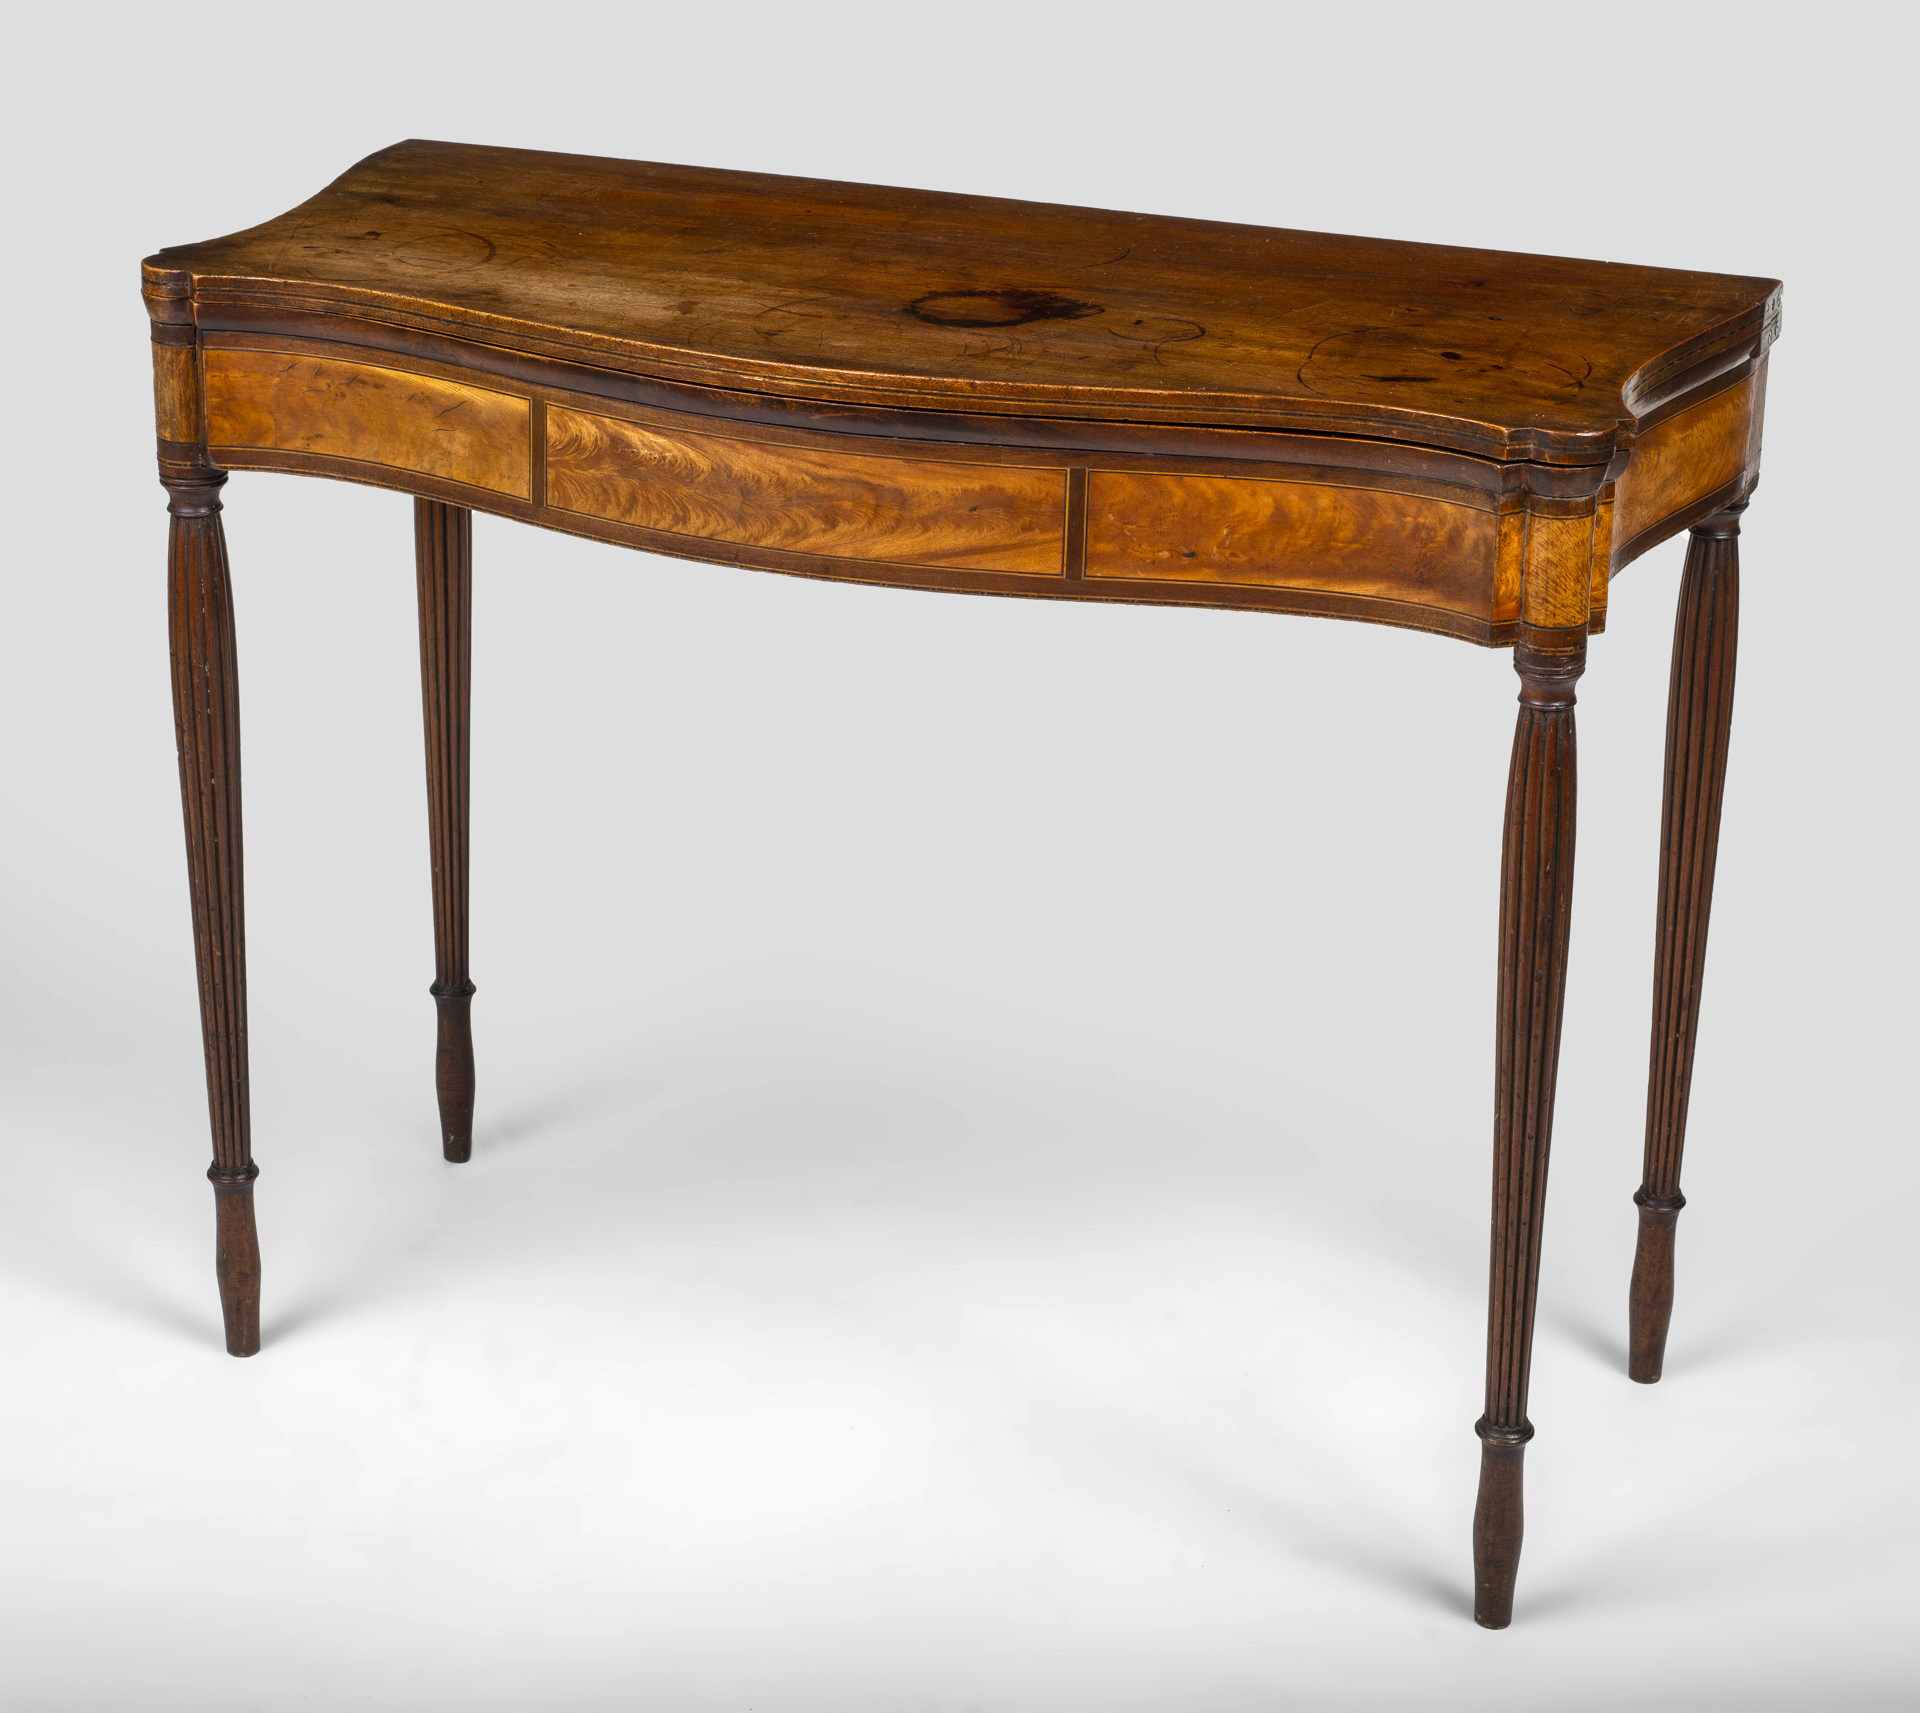 A very fine Sheraton card table